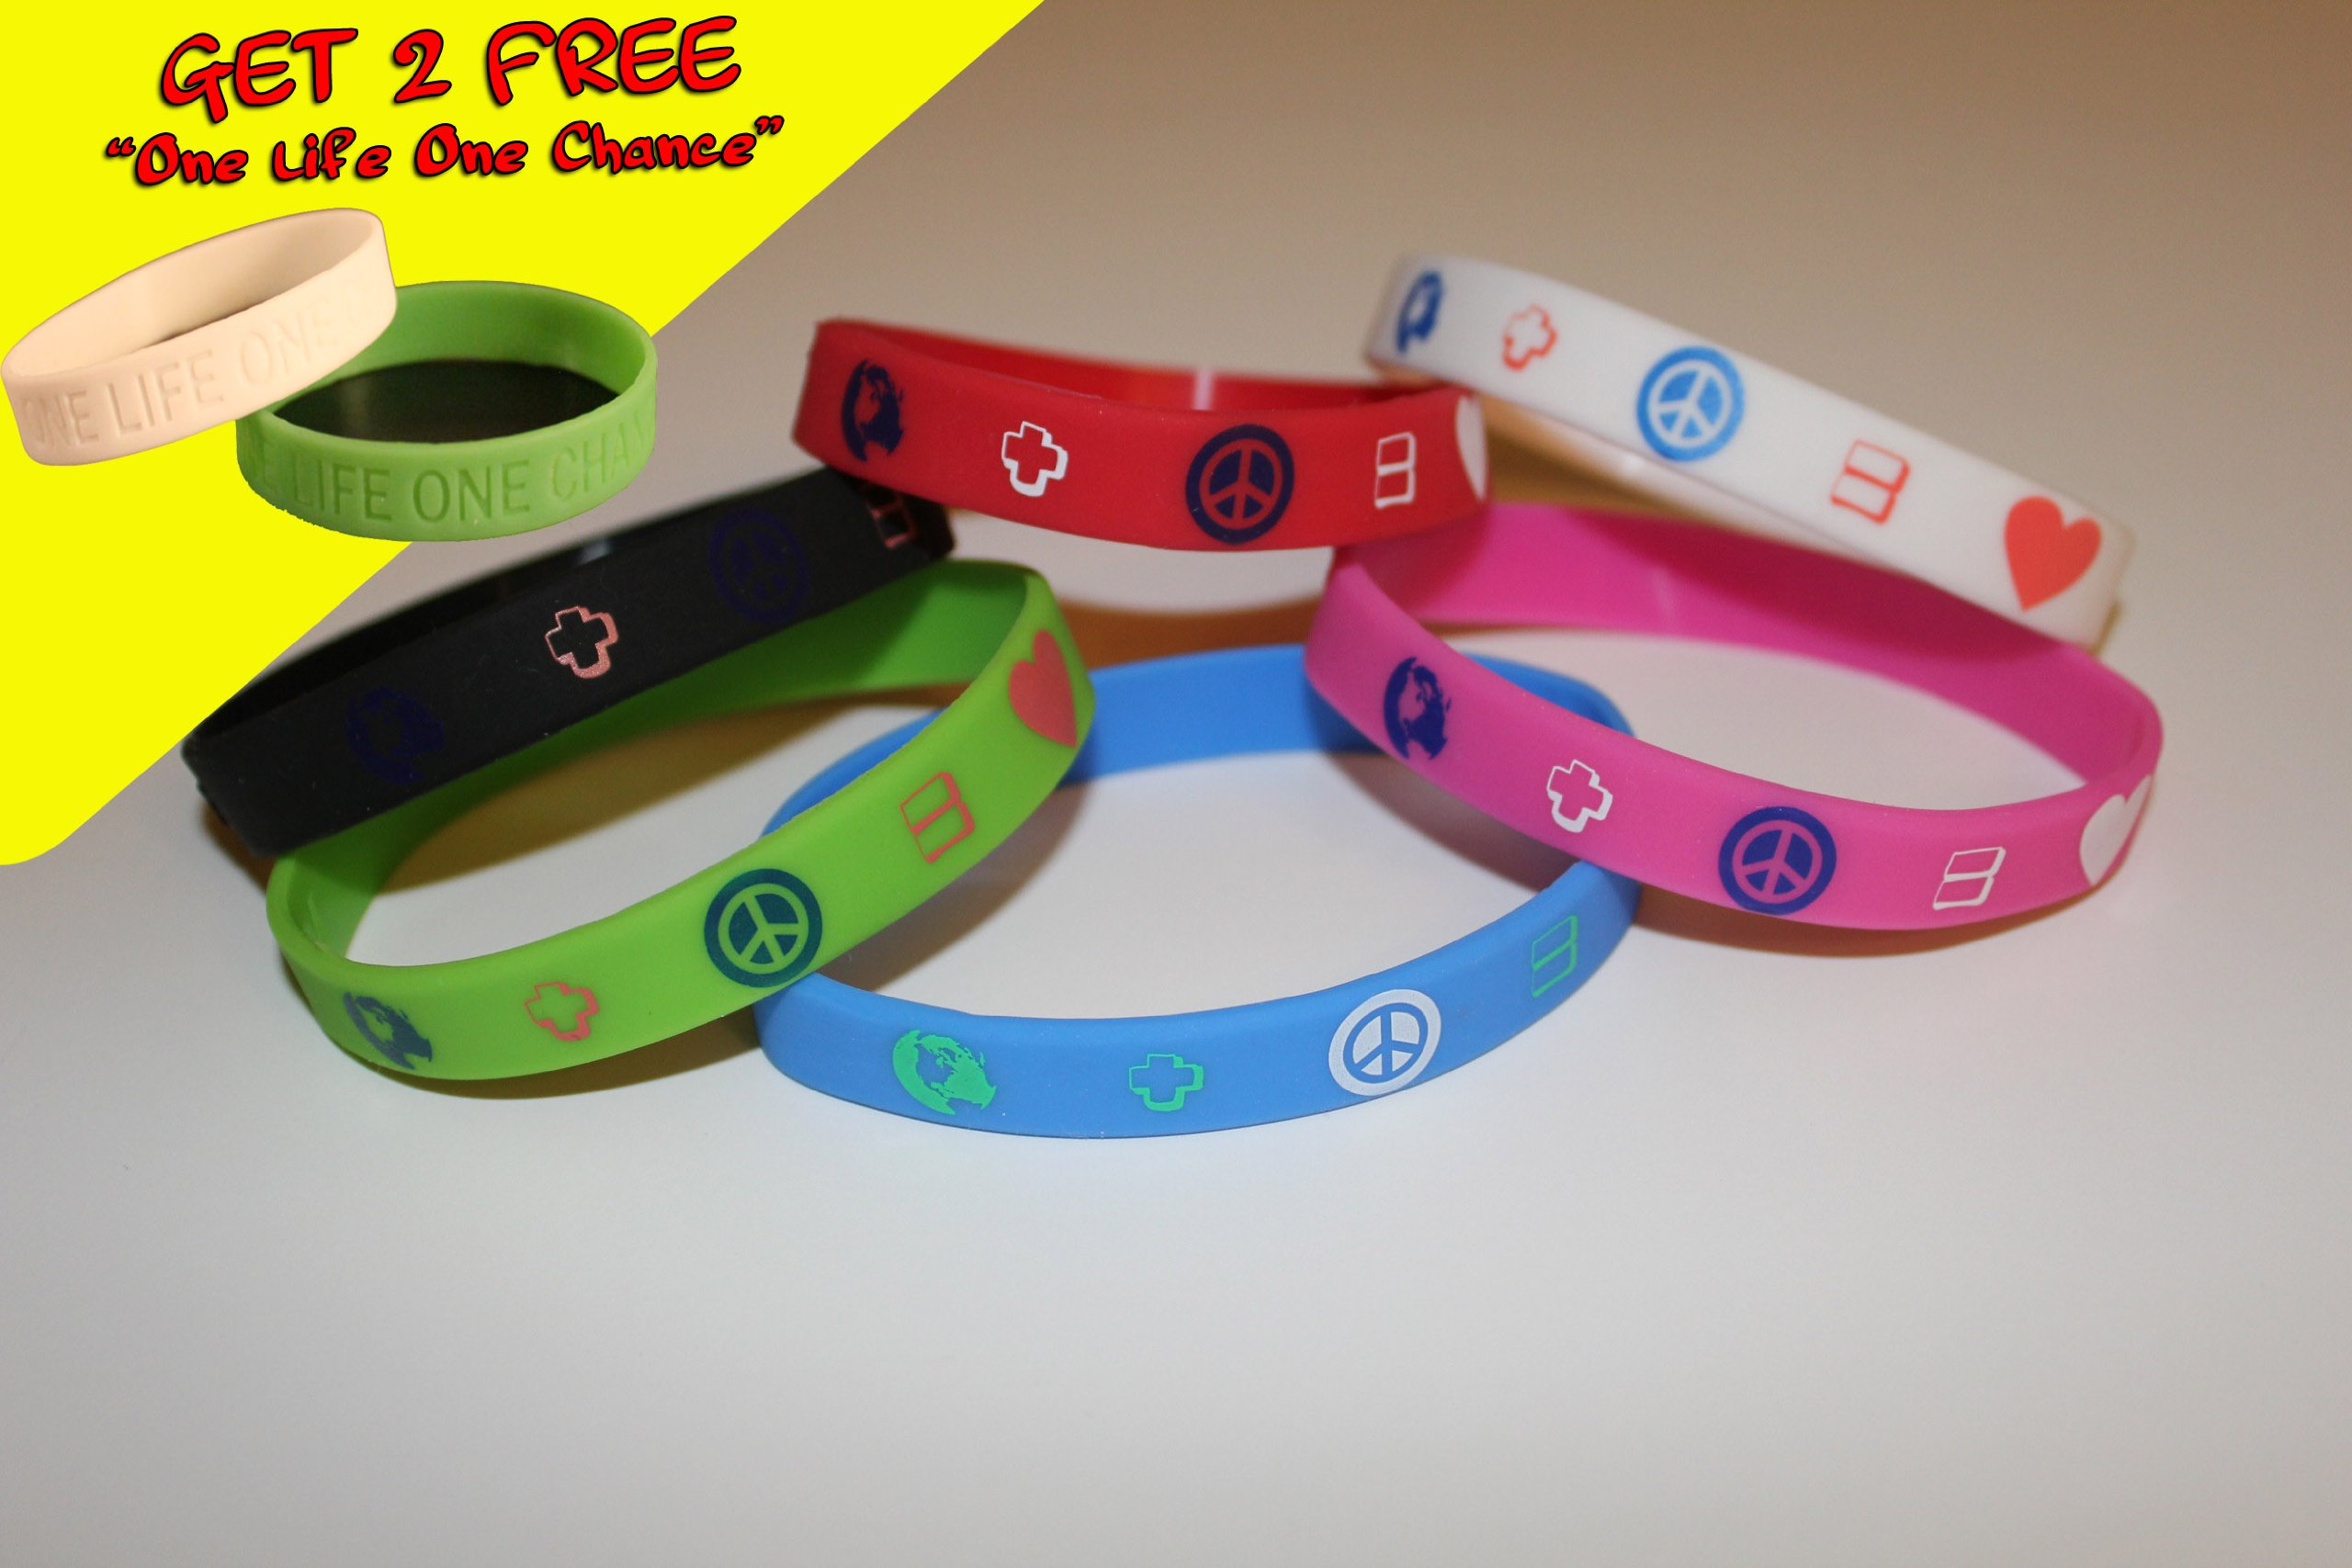 2 FREE One Life One Chance w/ purchase of PARTY FAVORS 7PK ONE OF EACH COLOR Silicone Wristband ''earth+peace=love'' for kids, teens, unisex